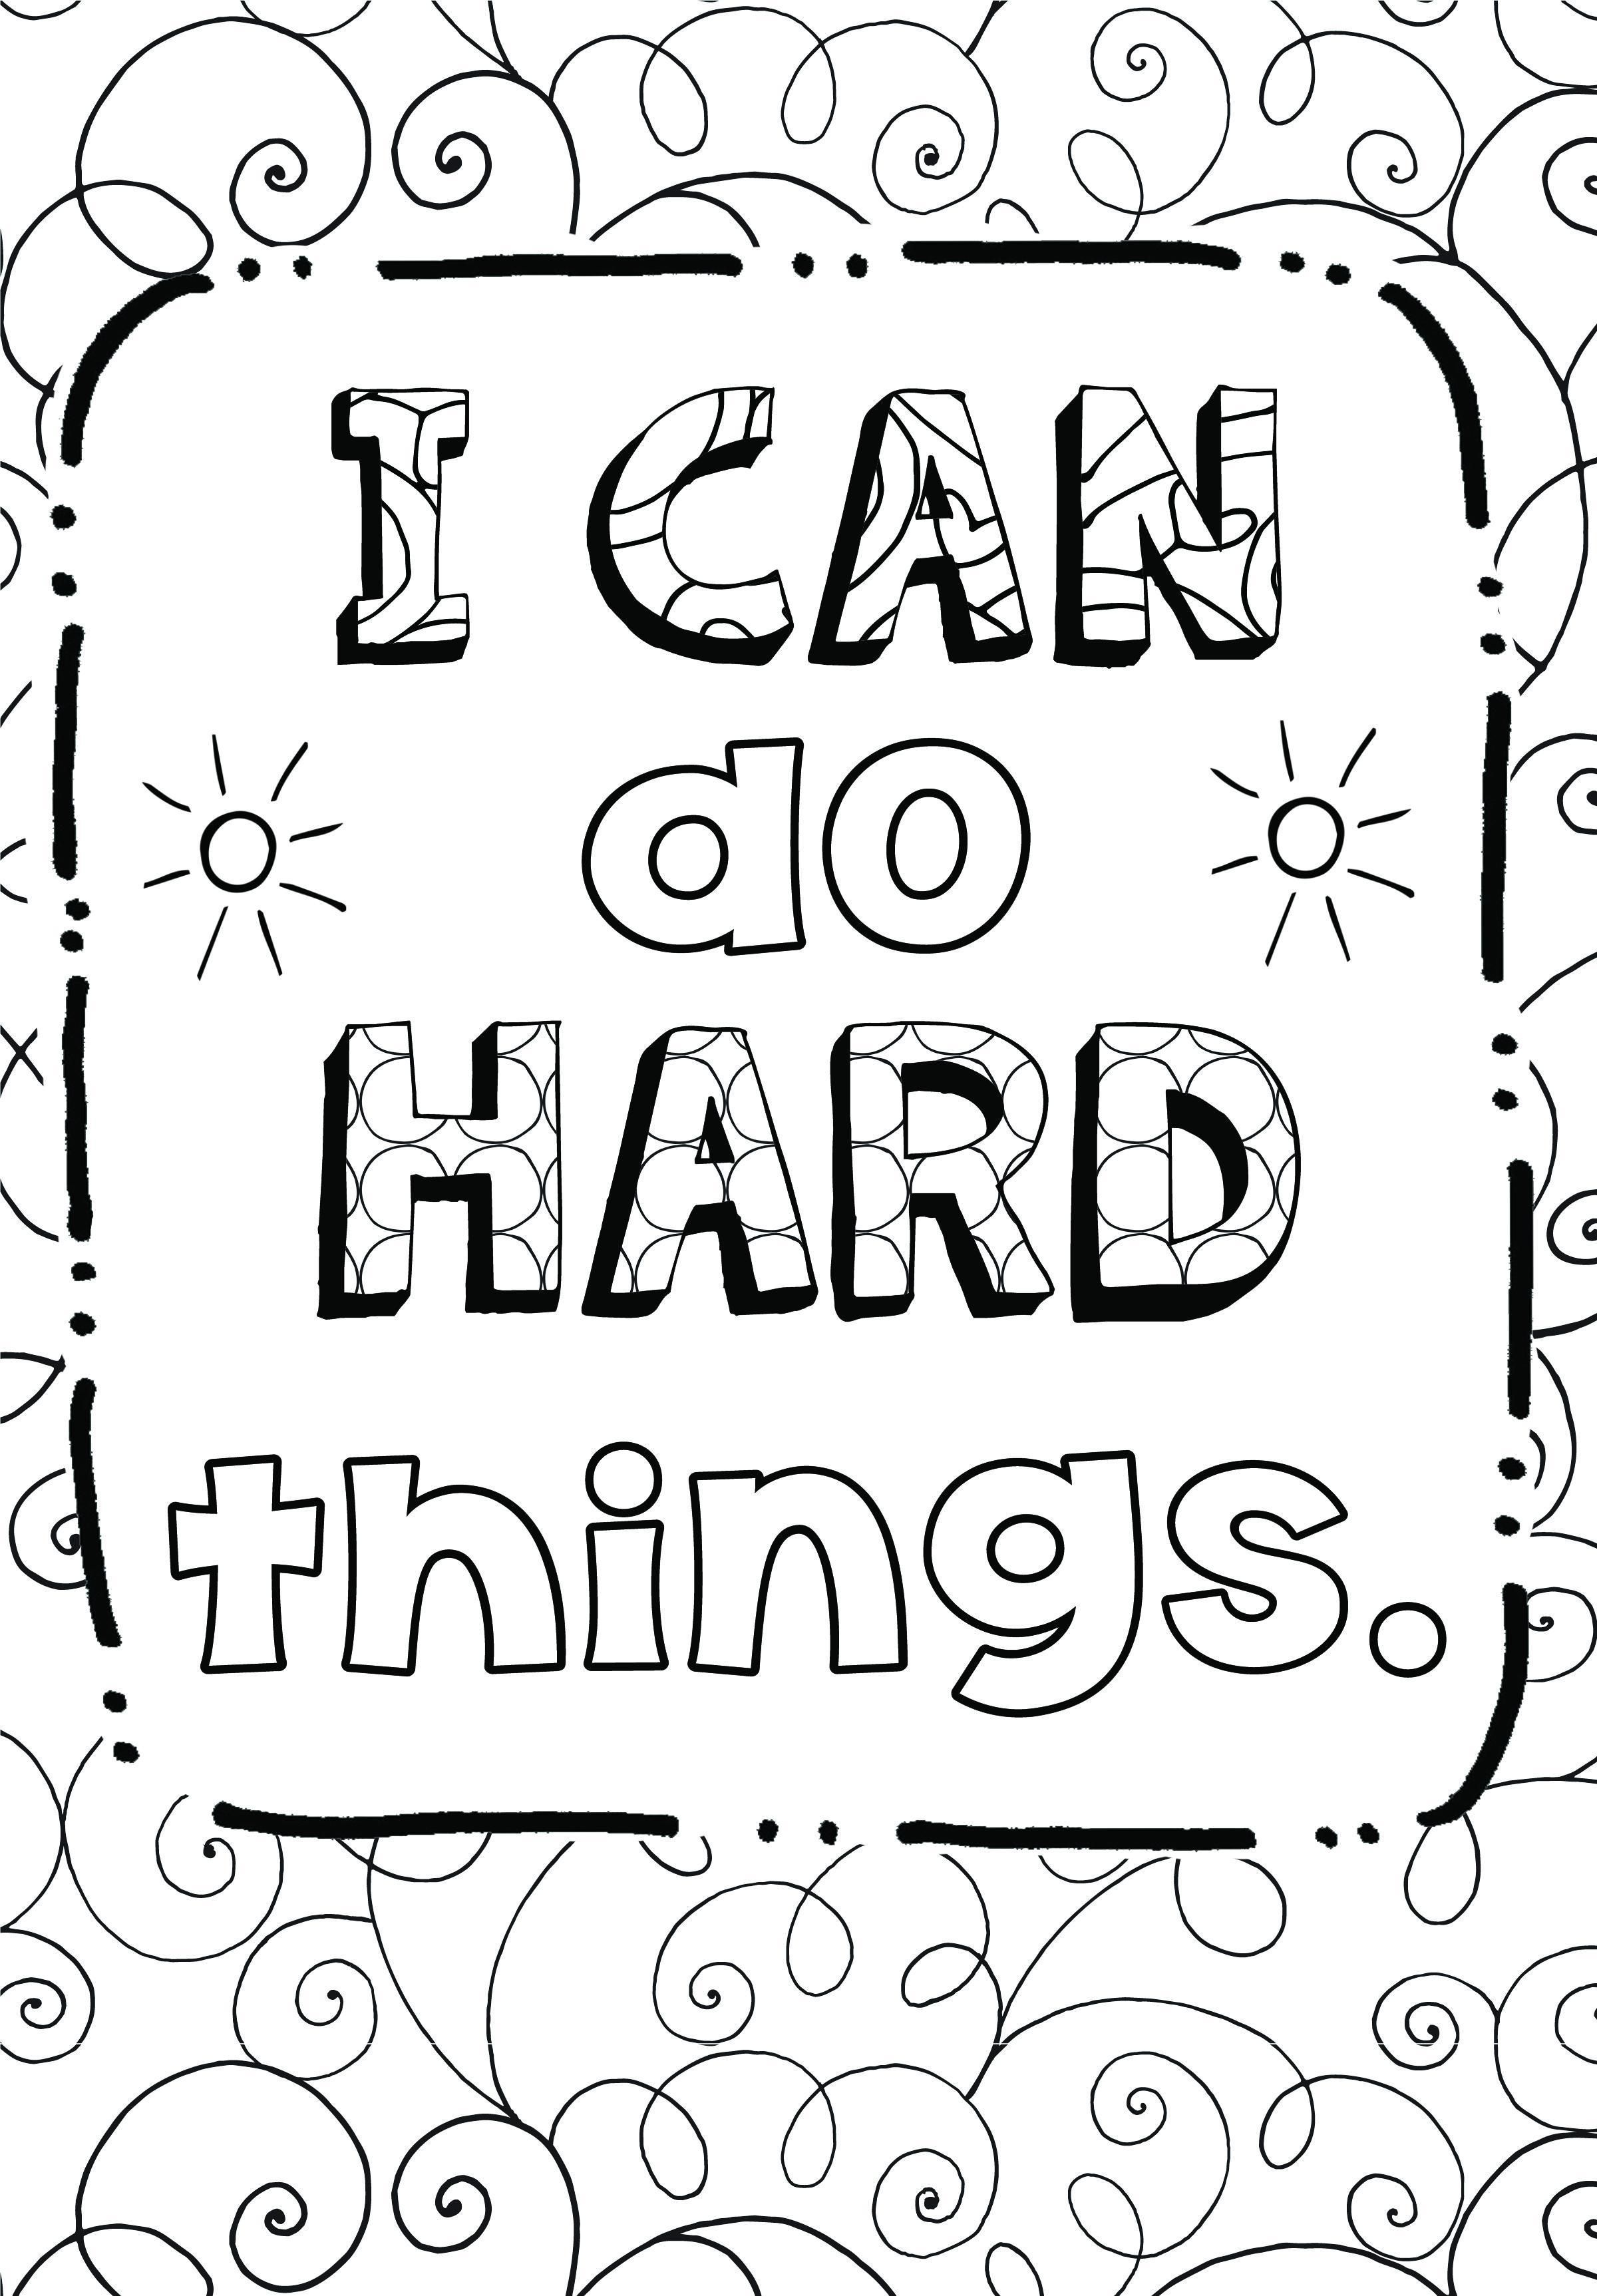 Related Image Teaching Growth Mindset Quote Coloring Pages Growth Mindset Quotes